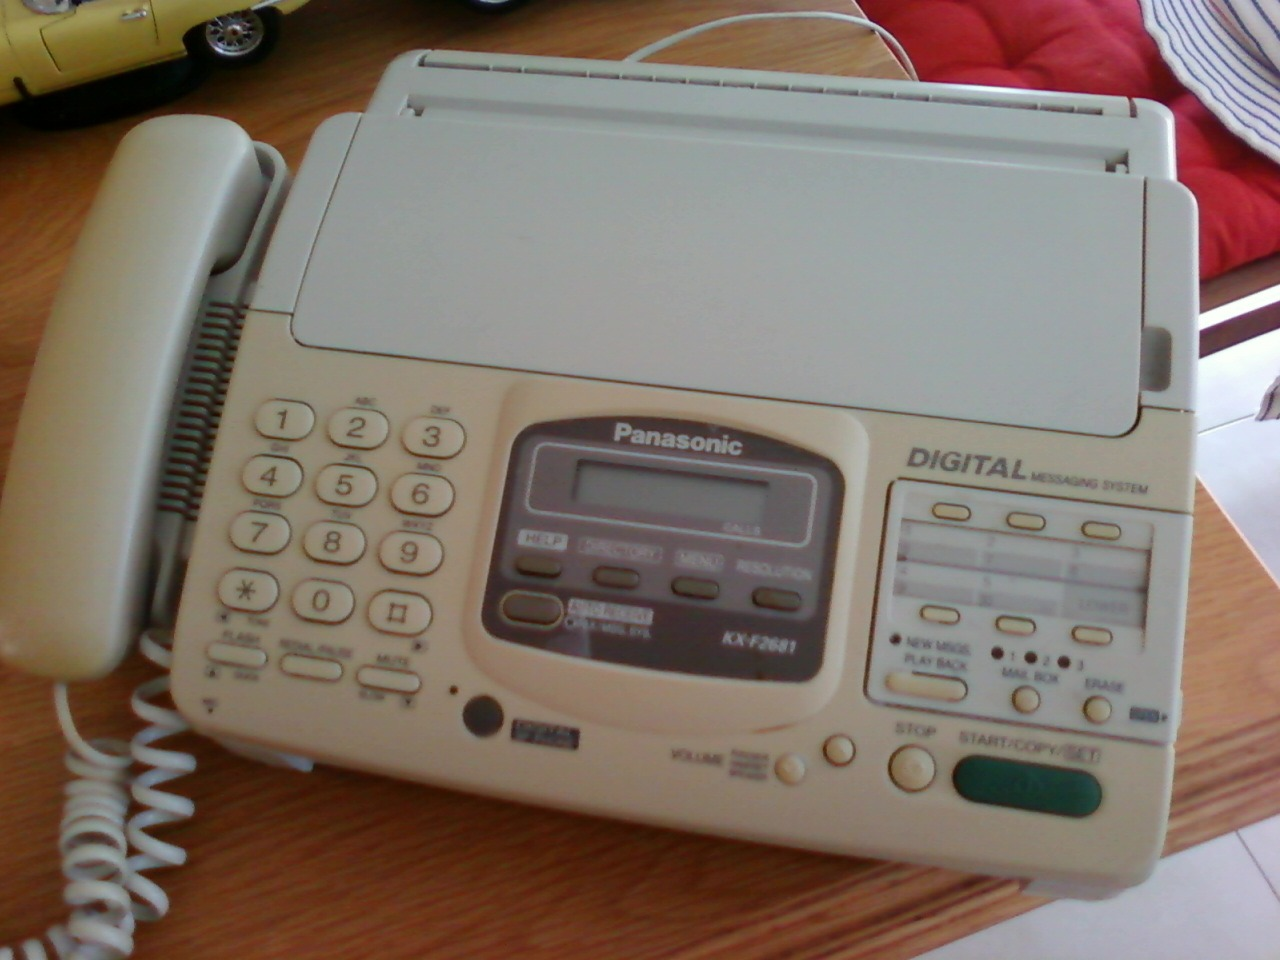 Telephone / fax / answering machine for sale